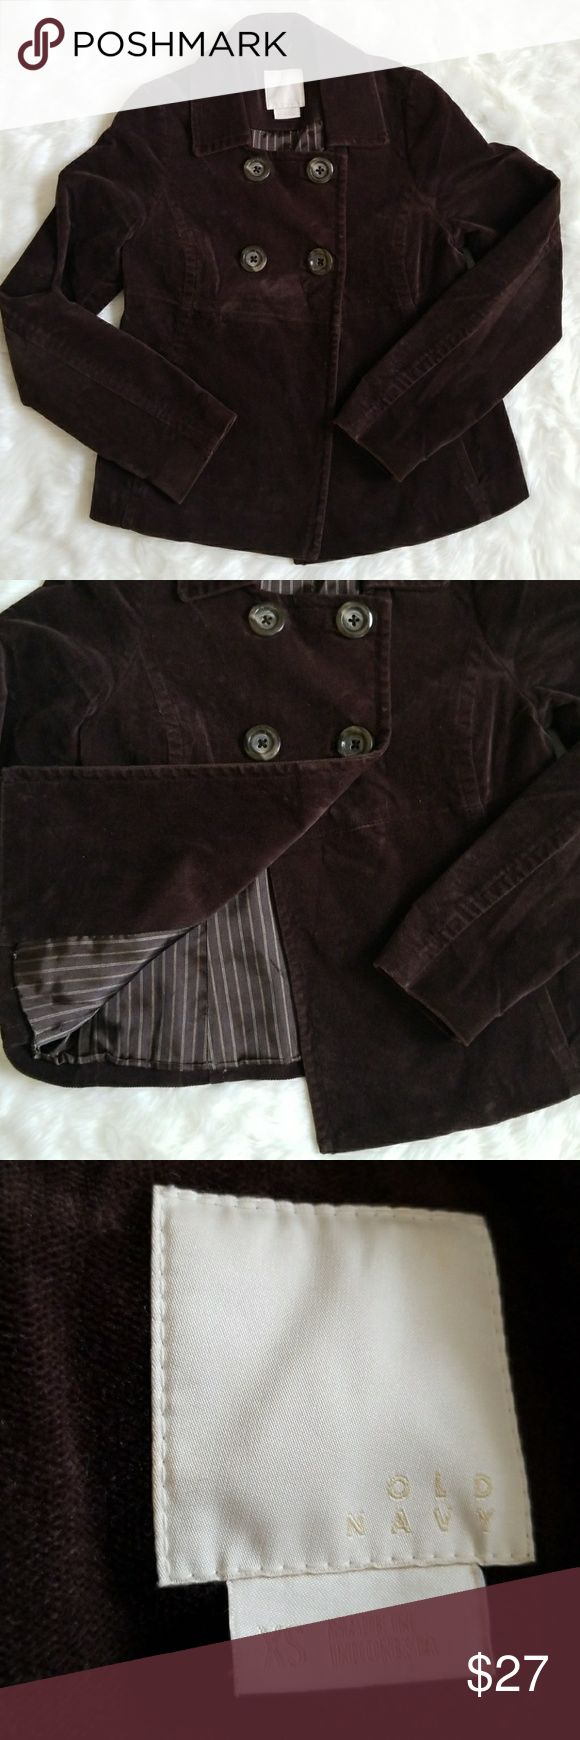 OLD NAVY PEA COAT Old Navy brown pea coat sz XS. Coat worn twice, in amazing shape! Coat is fully lined, pockets are functional,  soft velvety material, double breasted closure. Old Navy Jackets & Coats Pea Coats